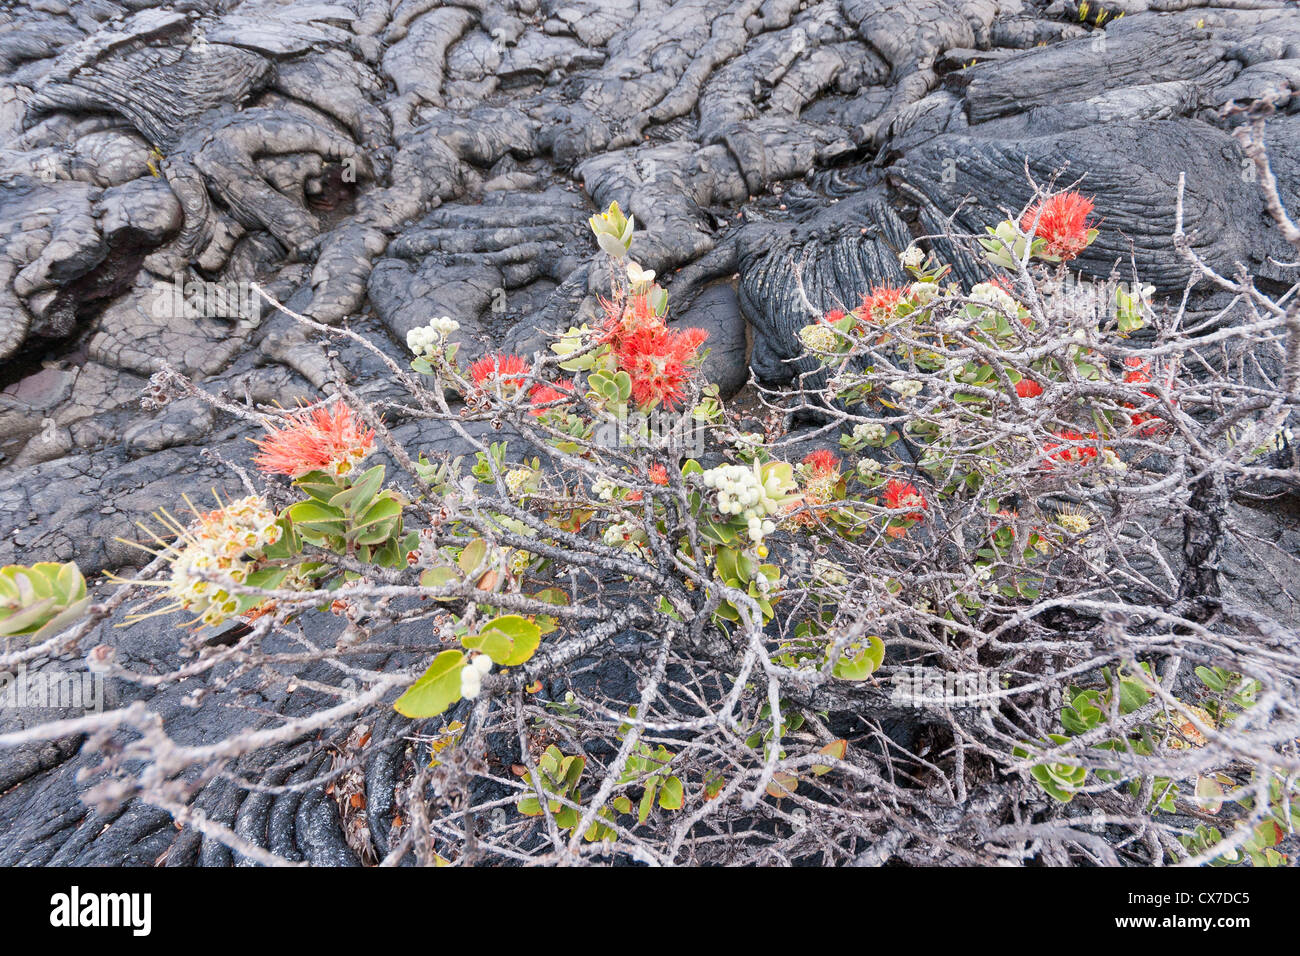 Ohia lehua plant is superbly adapted to sulfur dioxide emissions of volcanoes in Hawaii. - Stock Image